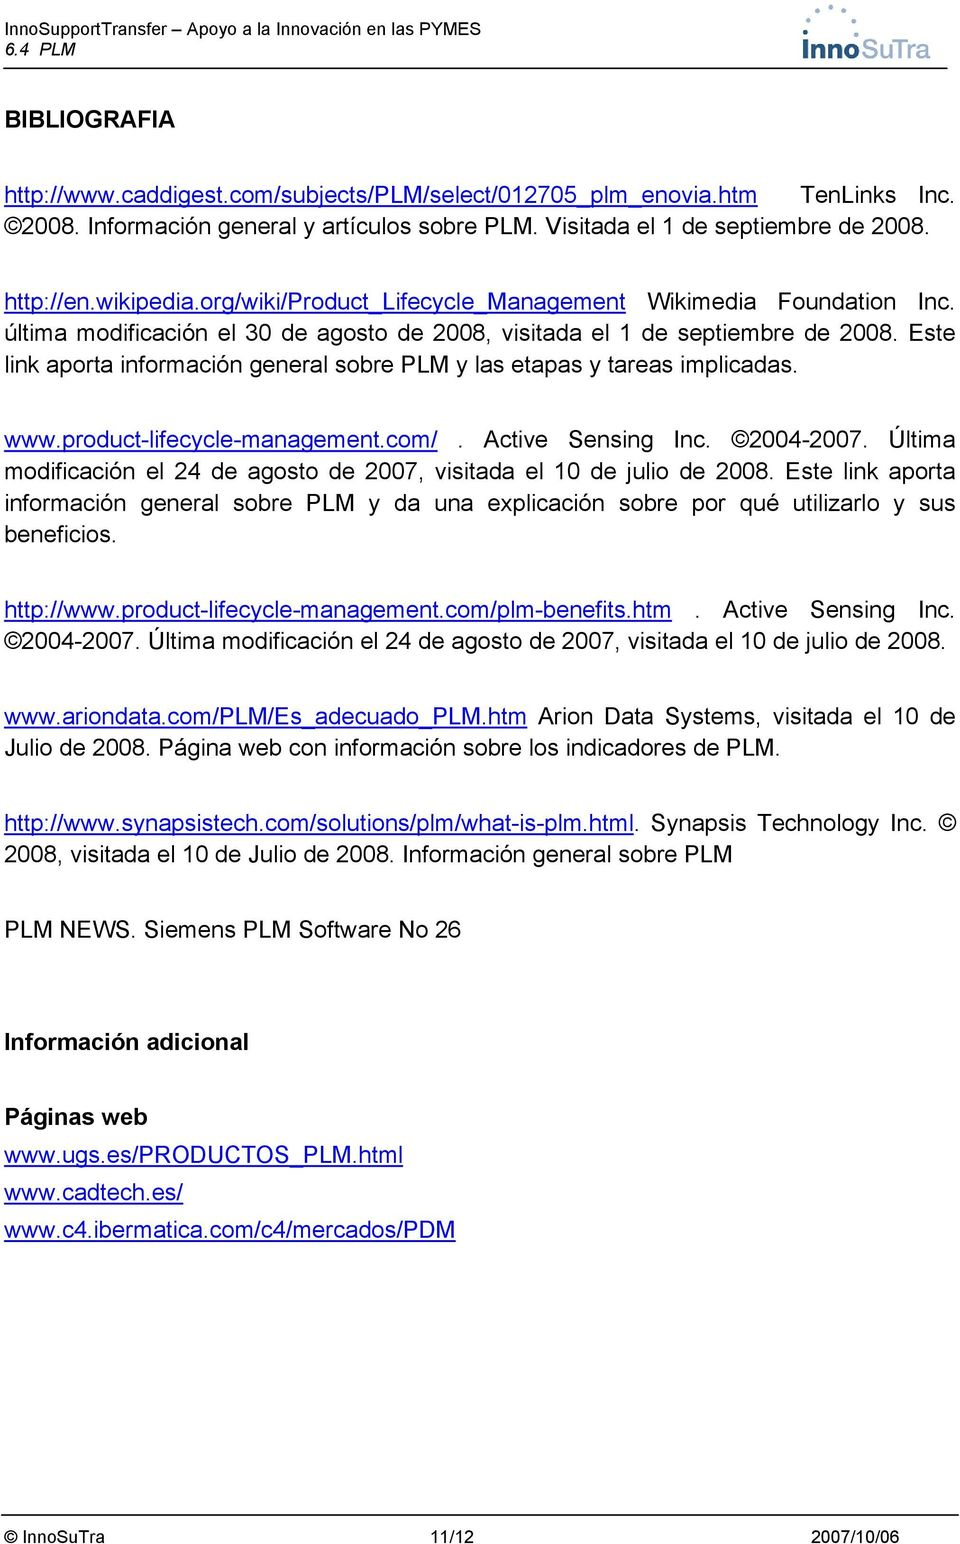 Este link aporta información general sobre PLM y las etapas y tareas implicadas. www.product-lifecycle-management.com/. Active Sensing Inc. 2004-2007.